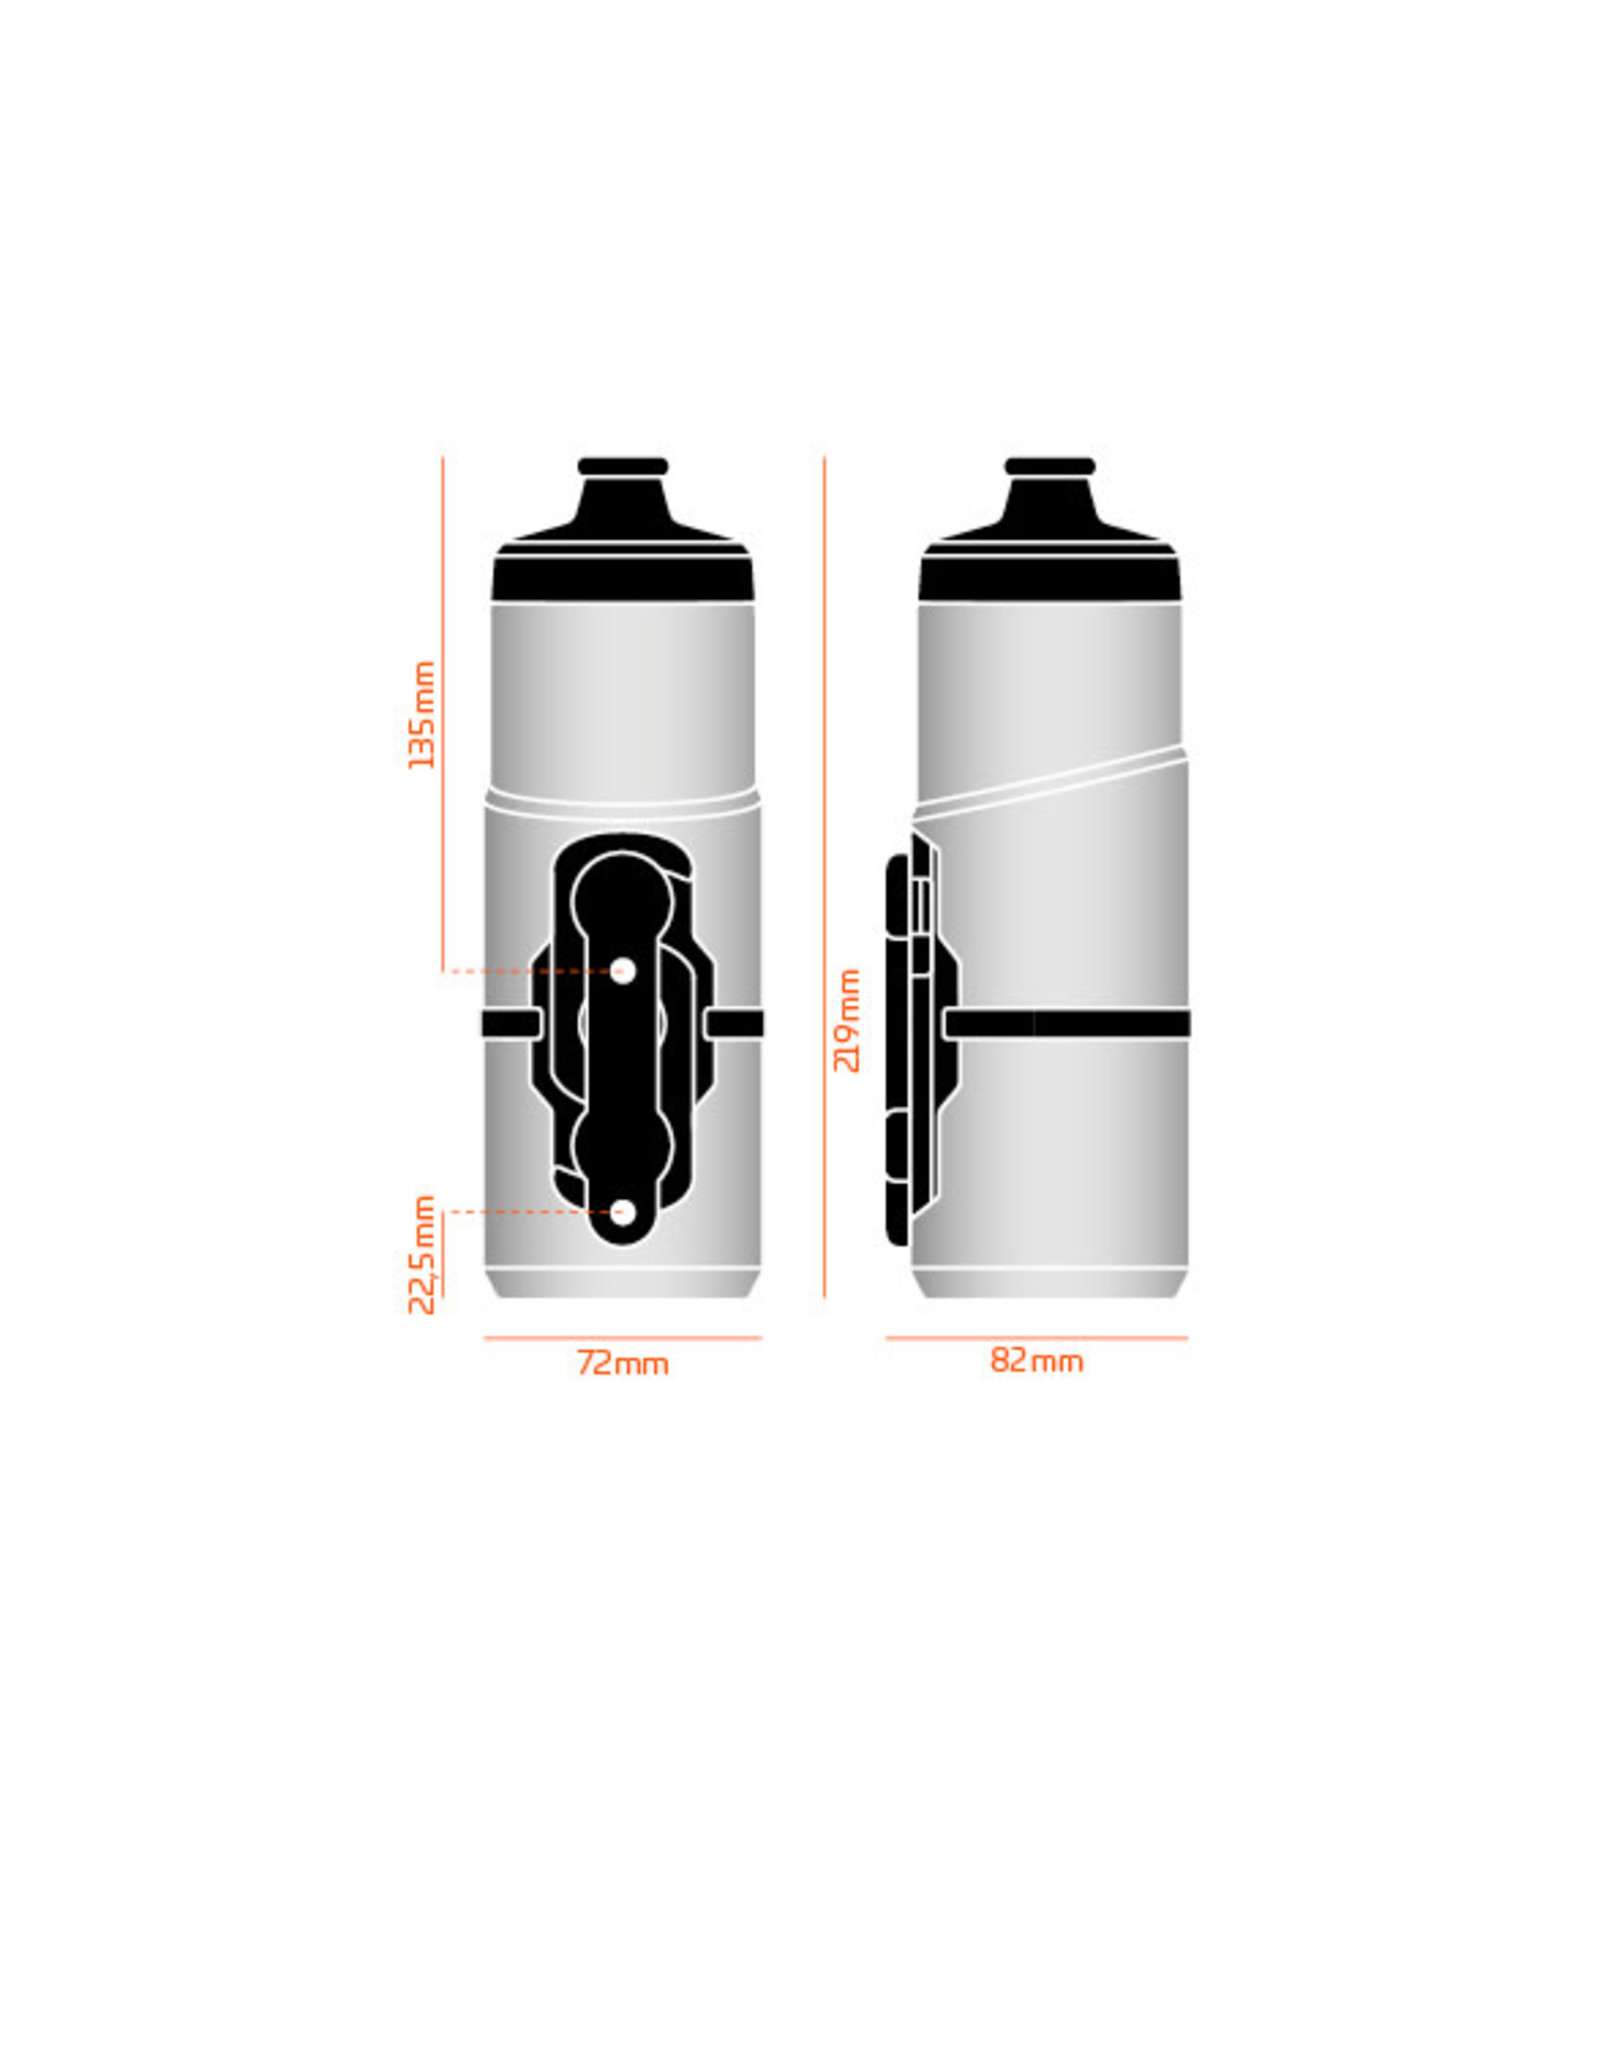 Fidlock FIDLOCK BOTTLE 590ML WITH BIKE BASE TRANSPARENT BLACK